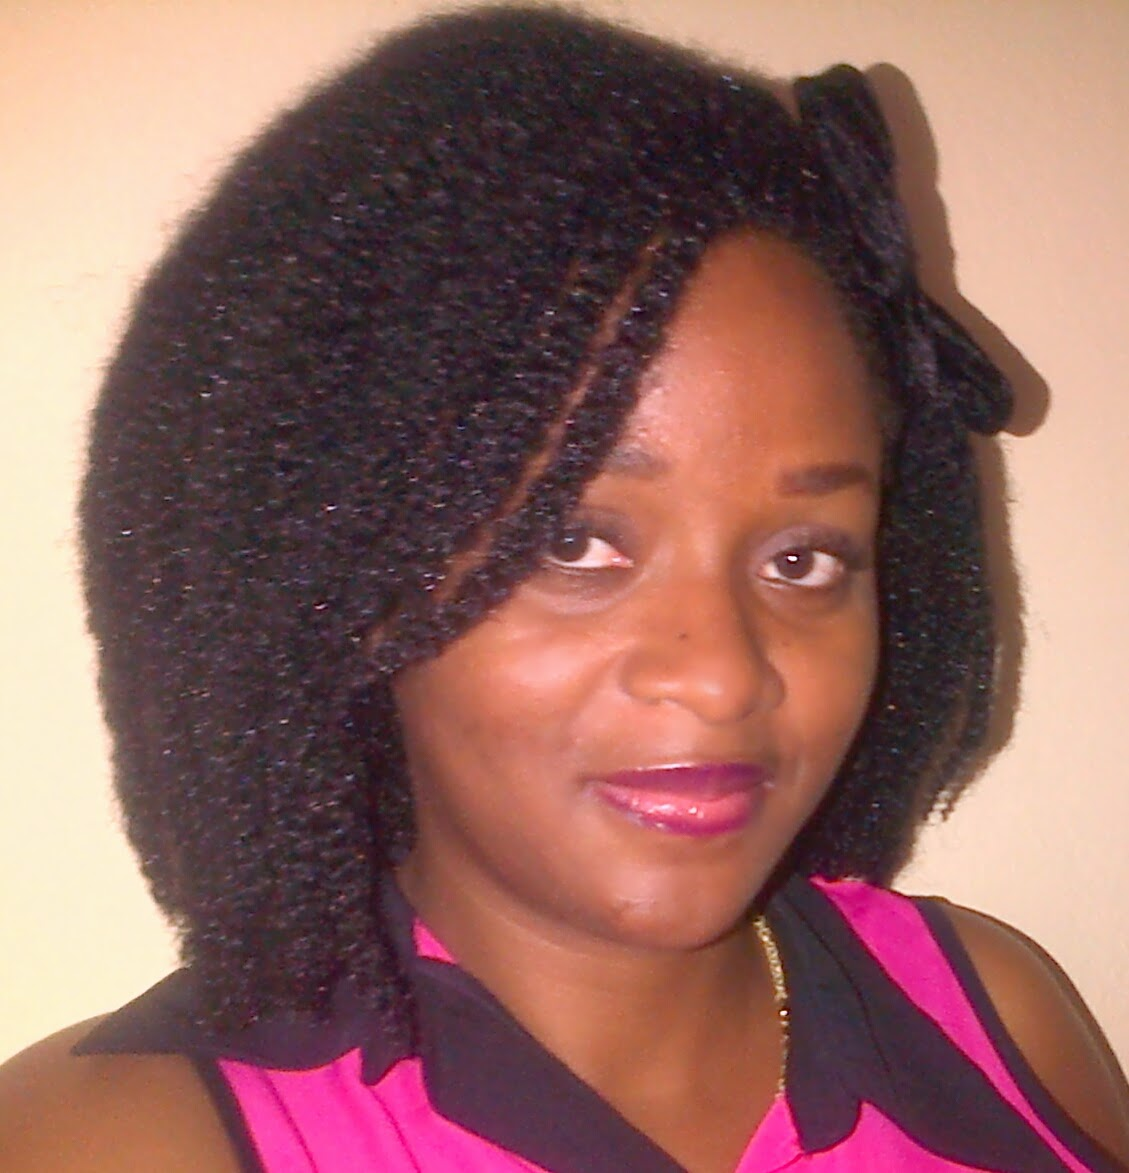 DarkChildLoveThyHair: DIY MID-LENGTH CROCHET BRAIDS